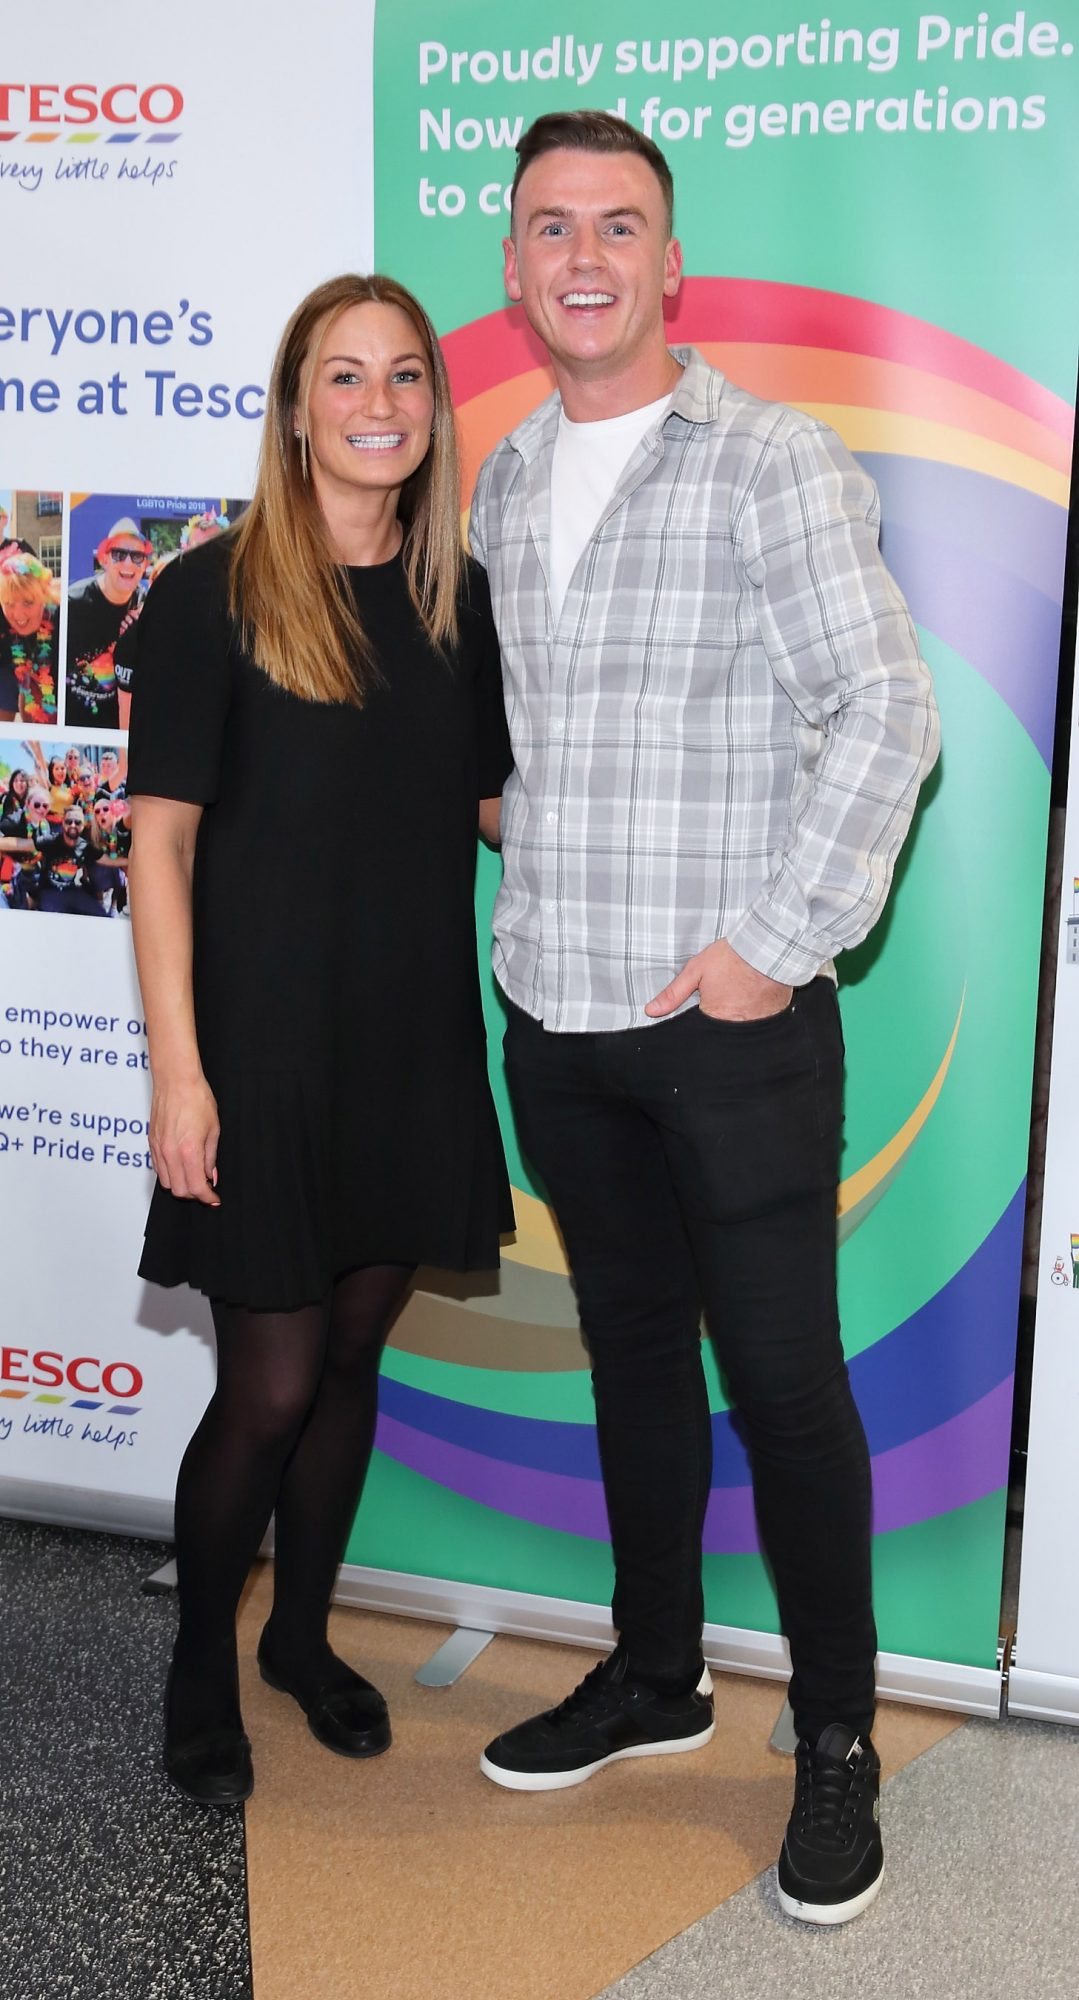 Miriam O'Shea and Dean Burnett pictured at the launch of the Dublin LGBTQ+ Pride Festival 2019 in partnership with platinum sponsor Tesco at the GPO, Dublin. Picture: Brian McEvoy Photography